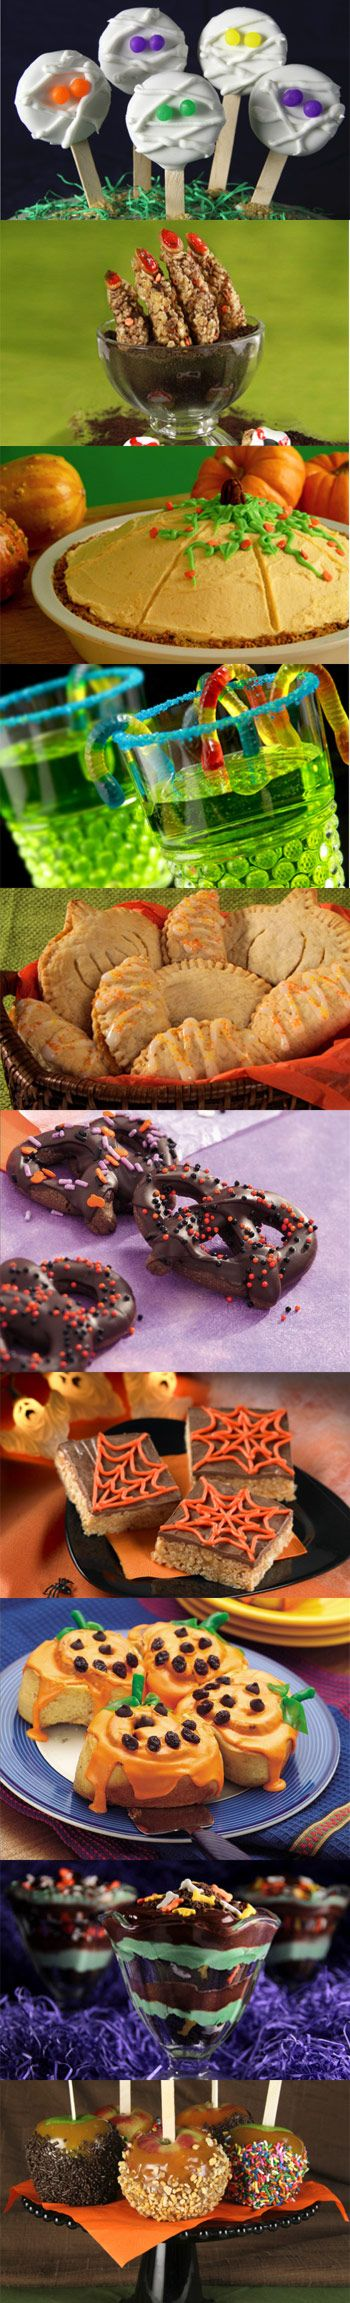 LOTS of fun Halloween food ideas at this link, check it out!